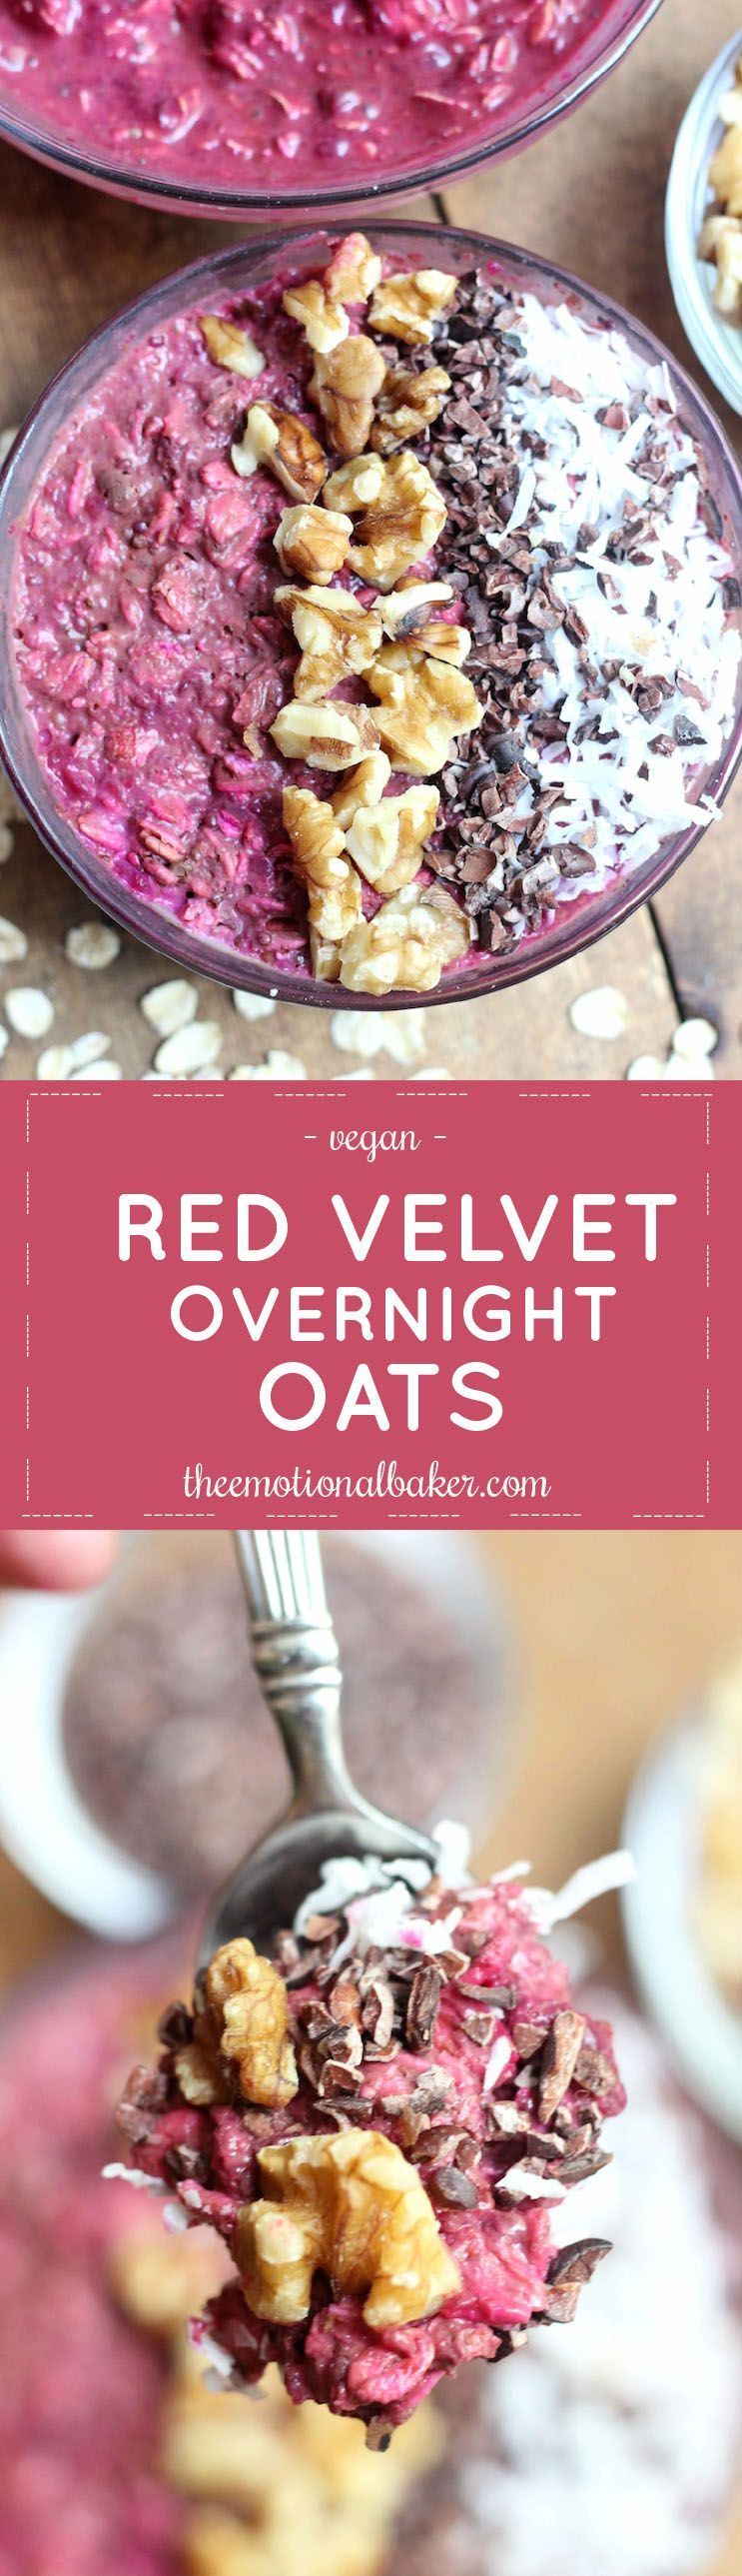 Start your day with easy and nutritious Red Velvet Overnight Oats. These feature beets and chia seeds for an energy boost!